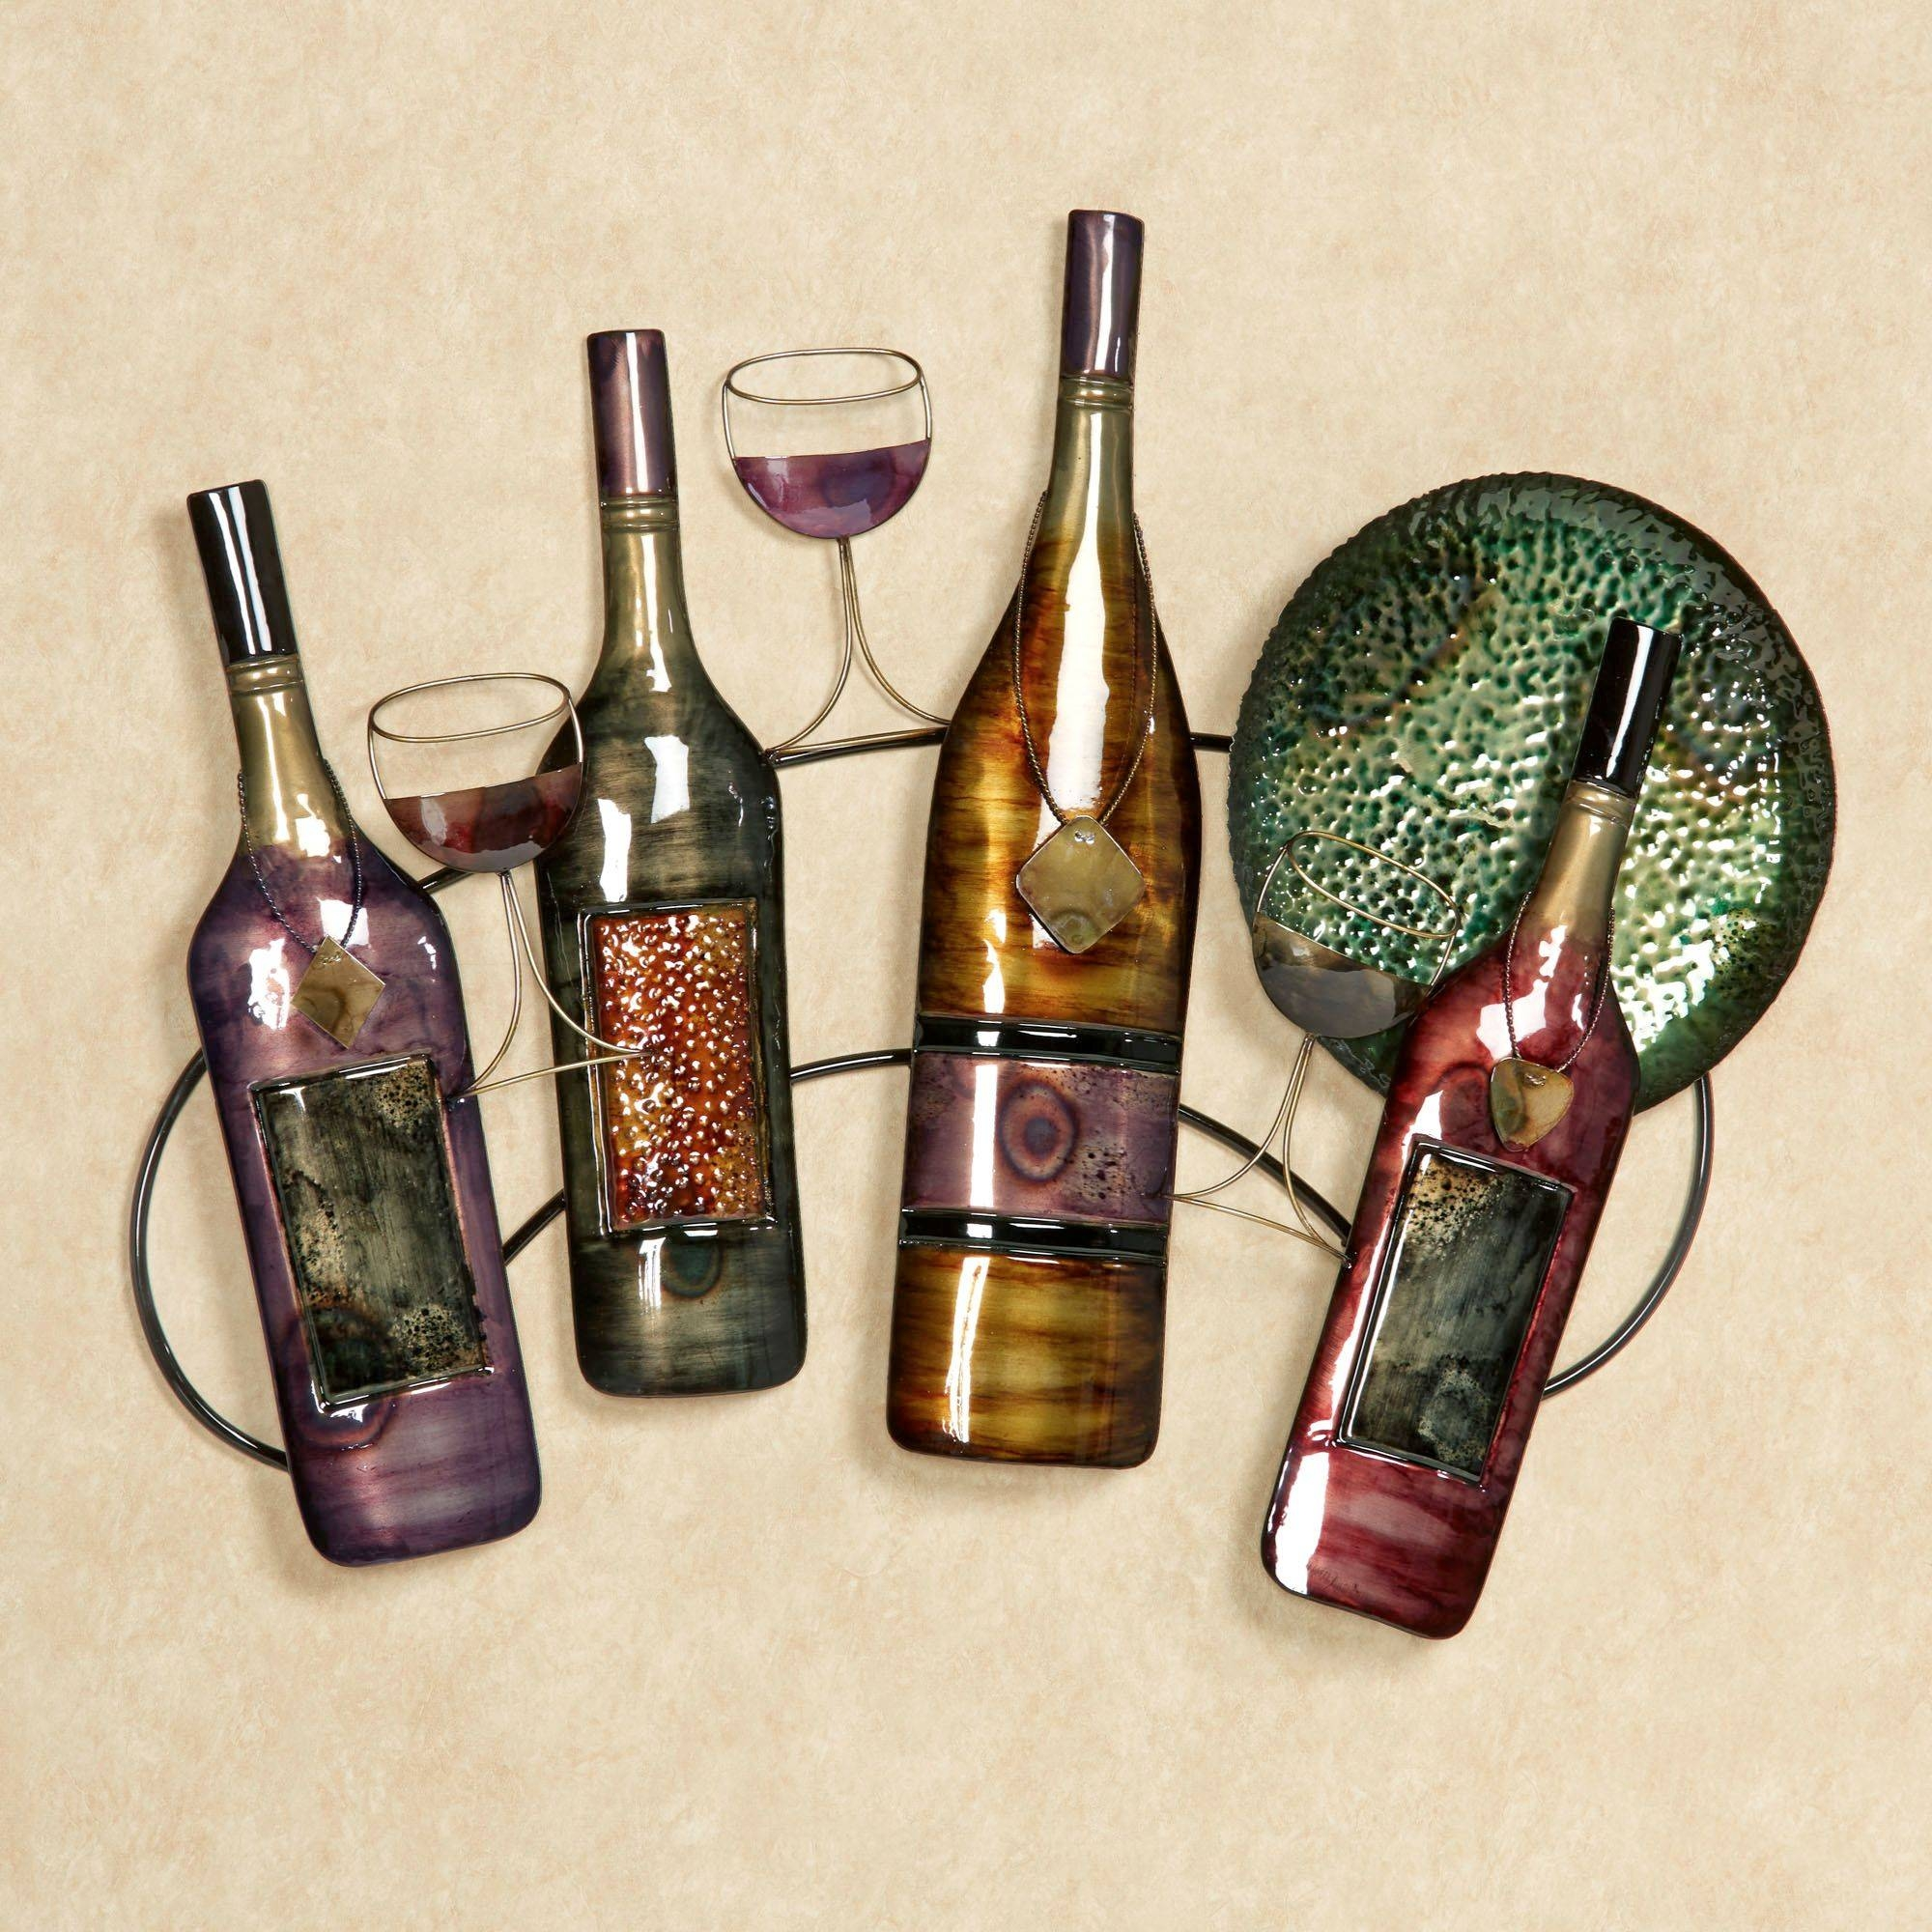 Wall Art Decor: Purchased Recent Wine Wall Art Metal Practice For Most  Popular Wine Metal